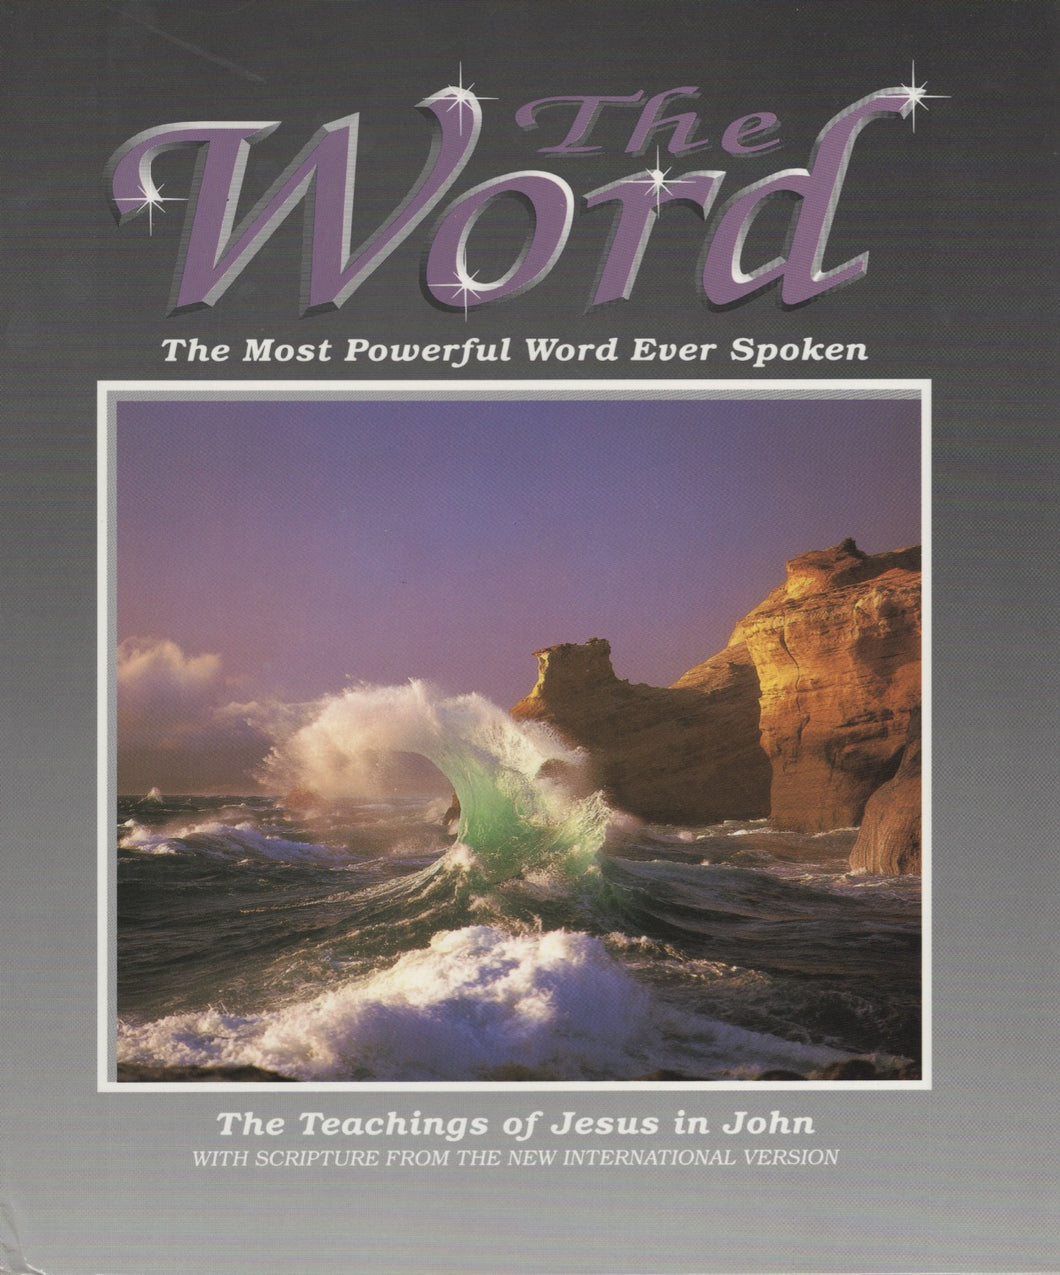 The Word (3): The Most Powerful Word Ever Spoken: The Teachings of Jesus in John